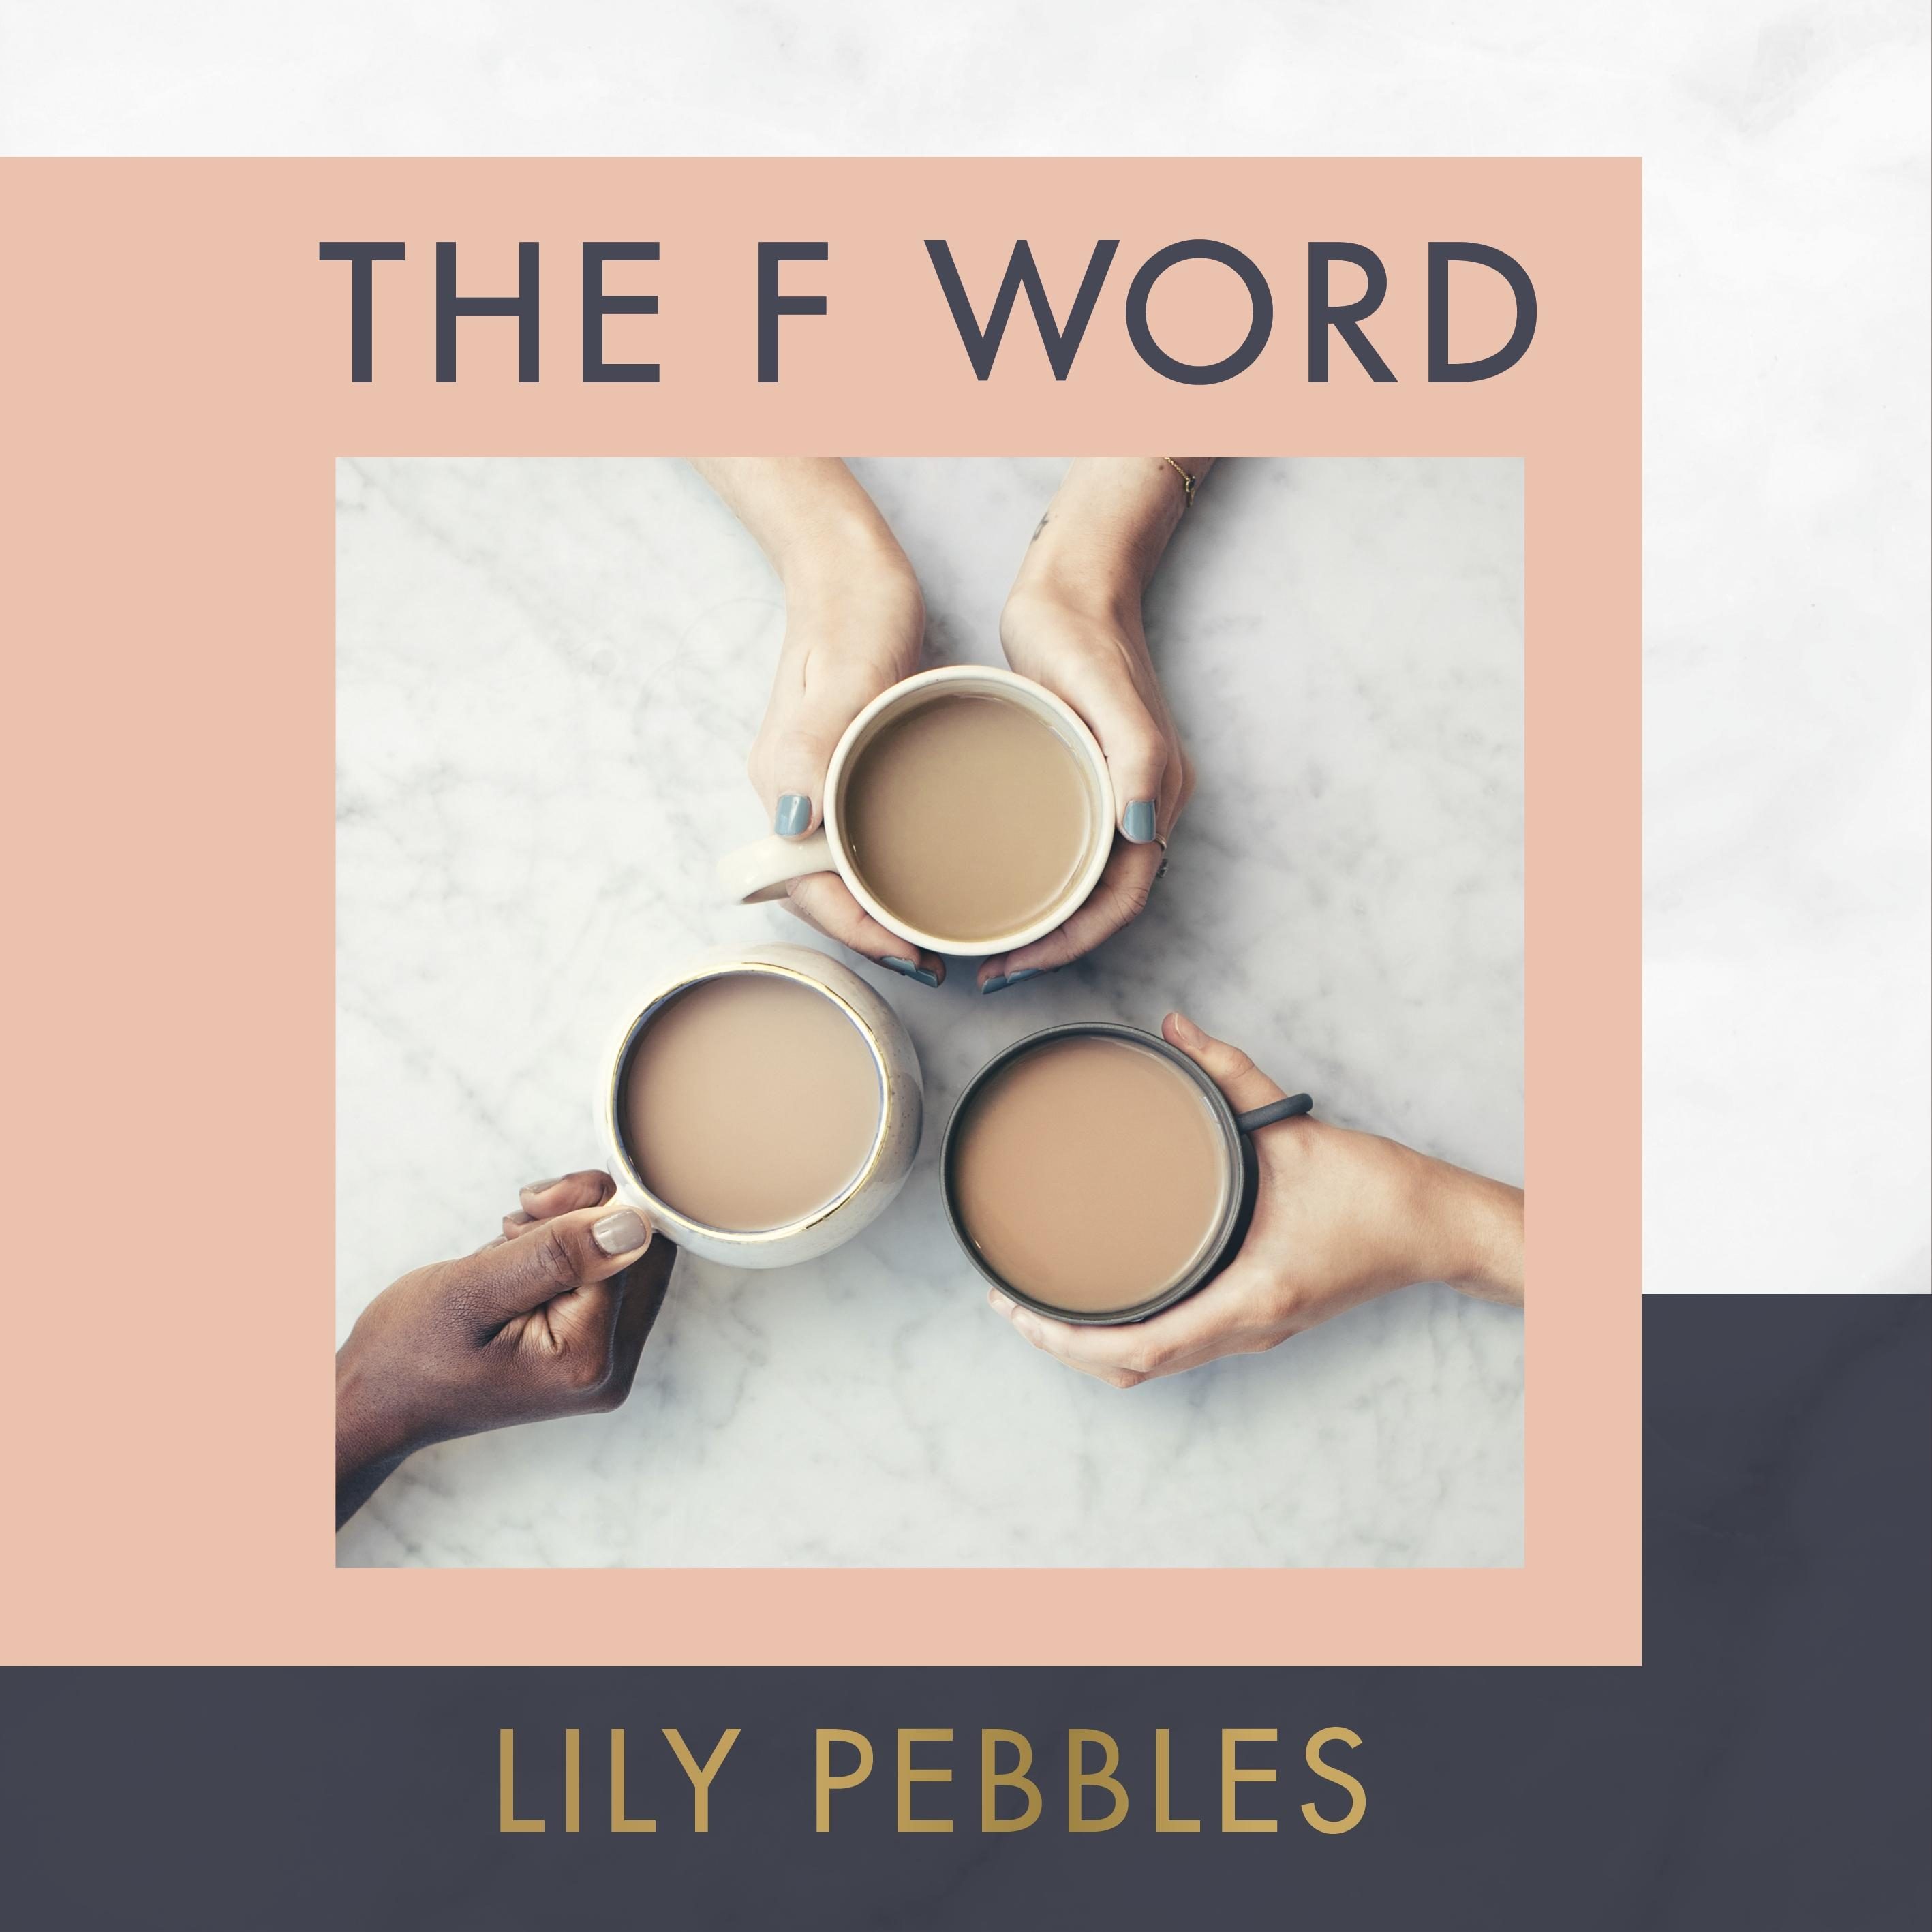 The F Word – Lilly Pebbles